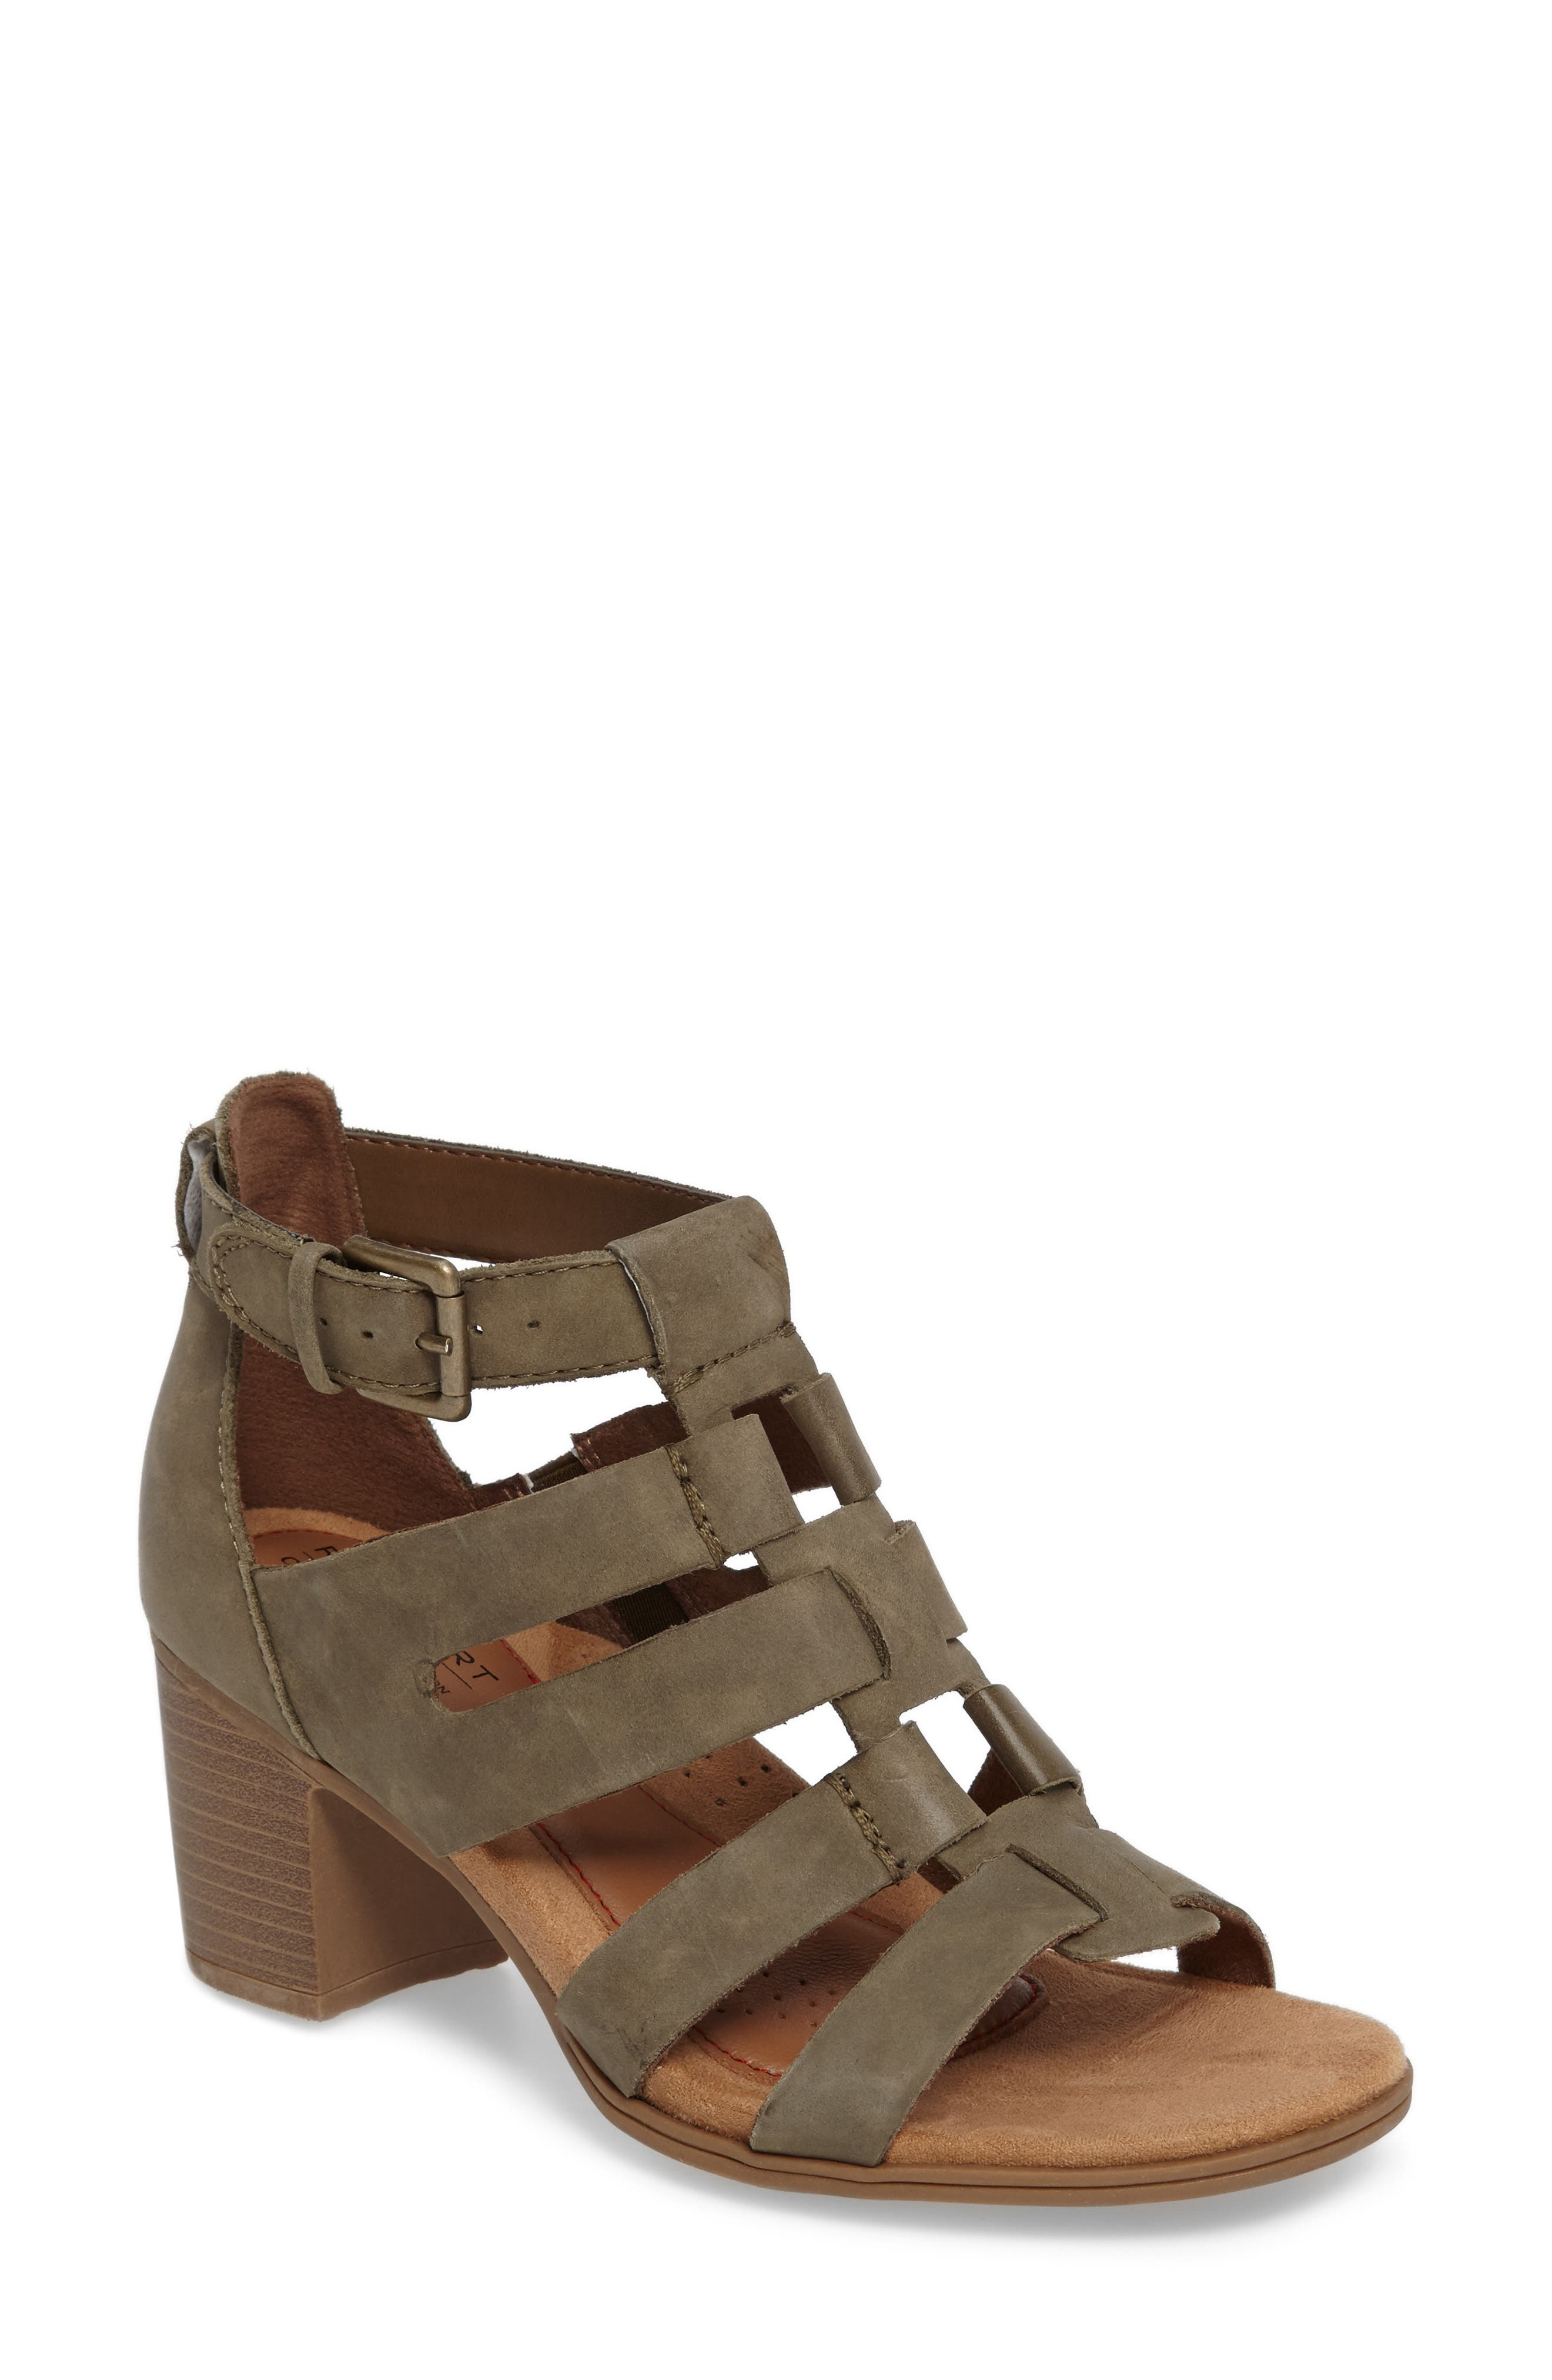 Alternate Image 1 Selected - Rockport Cobb Hill Hattie Block Heel Gladiator Sandal (Women)